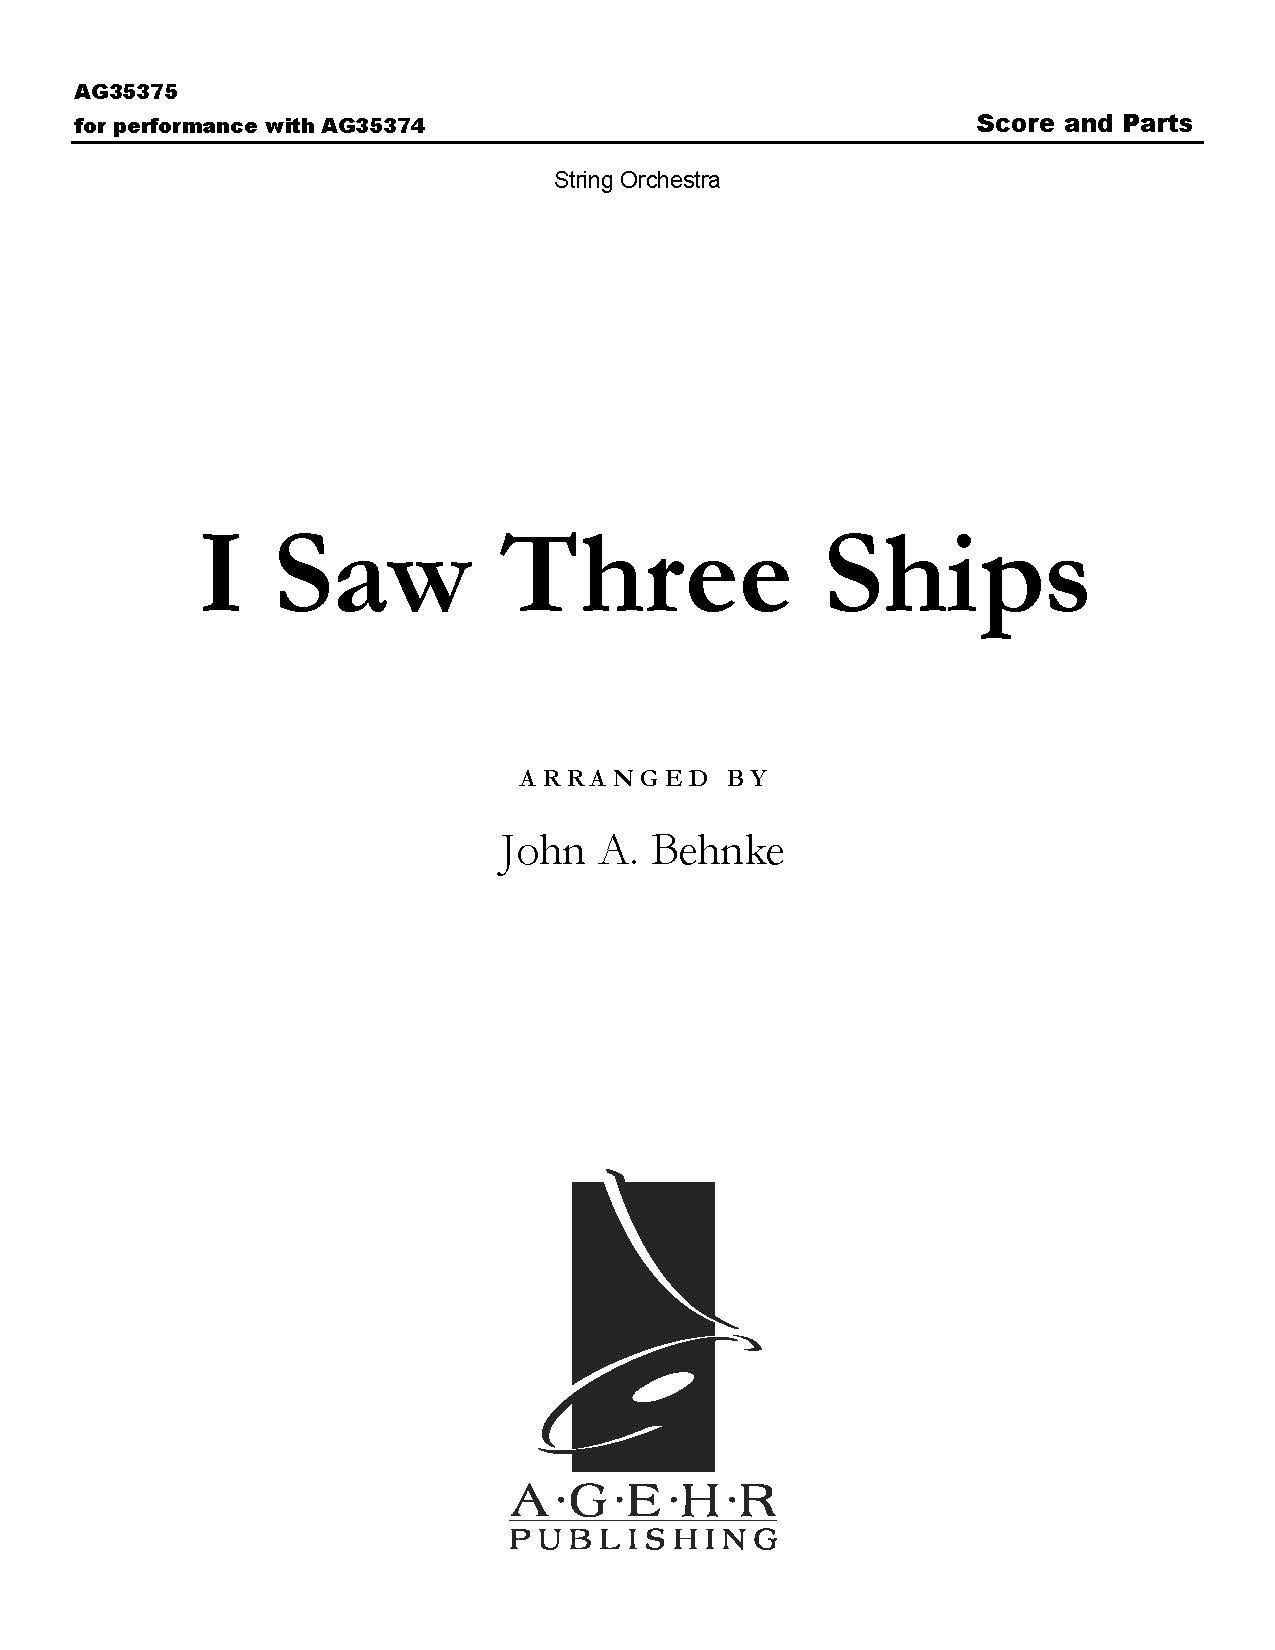 I Saw Three Ships (Full Score and String Parts)